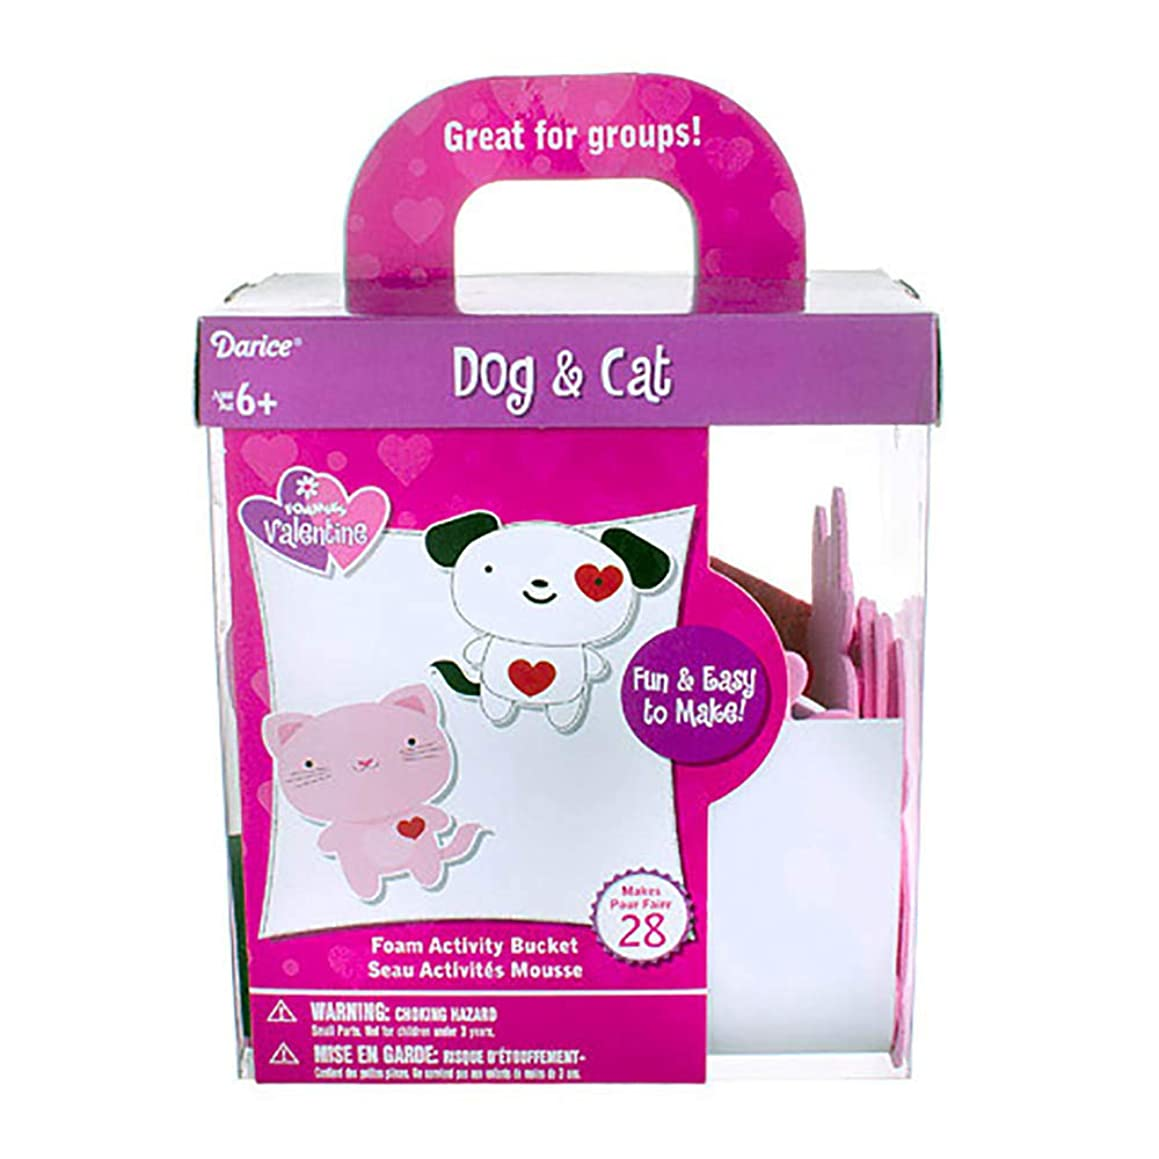 Darice Foam Animal Kit: Cat Dog, 3 x 3.5 inches, 225 Pieces, Makes 28 - Great for Kids Parties, Teacher, Groups